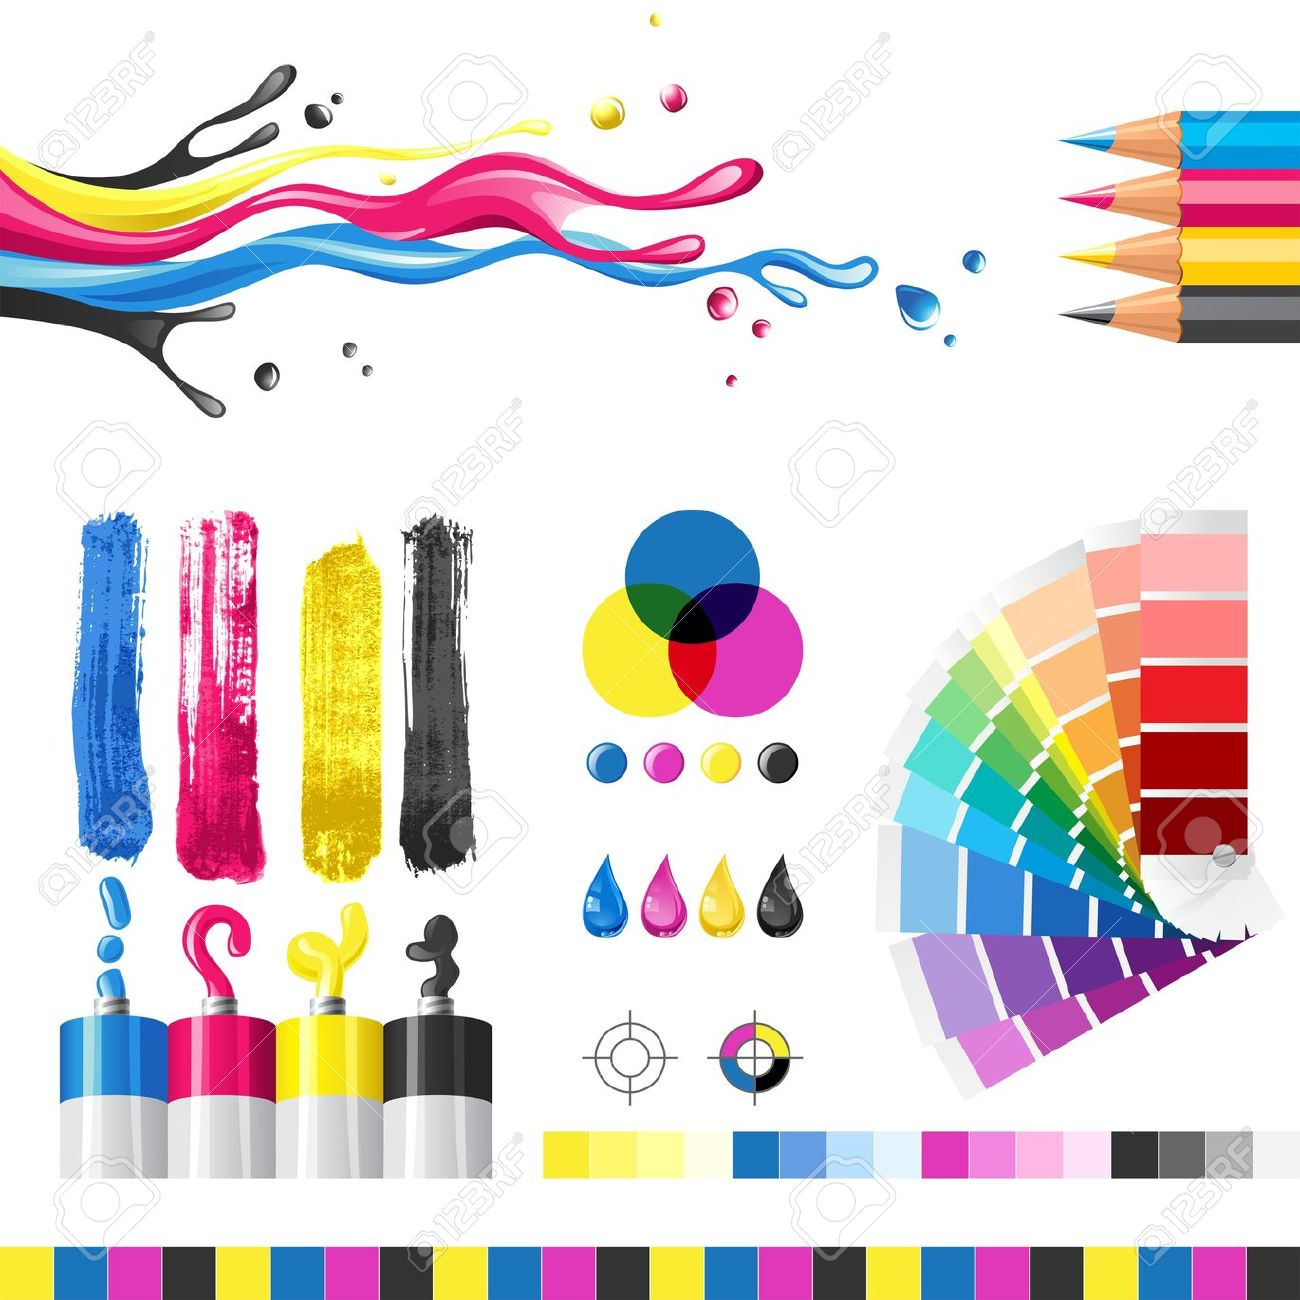 Color printing clipart.